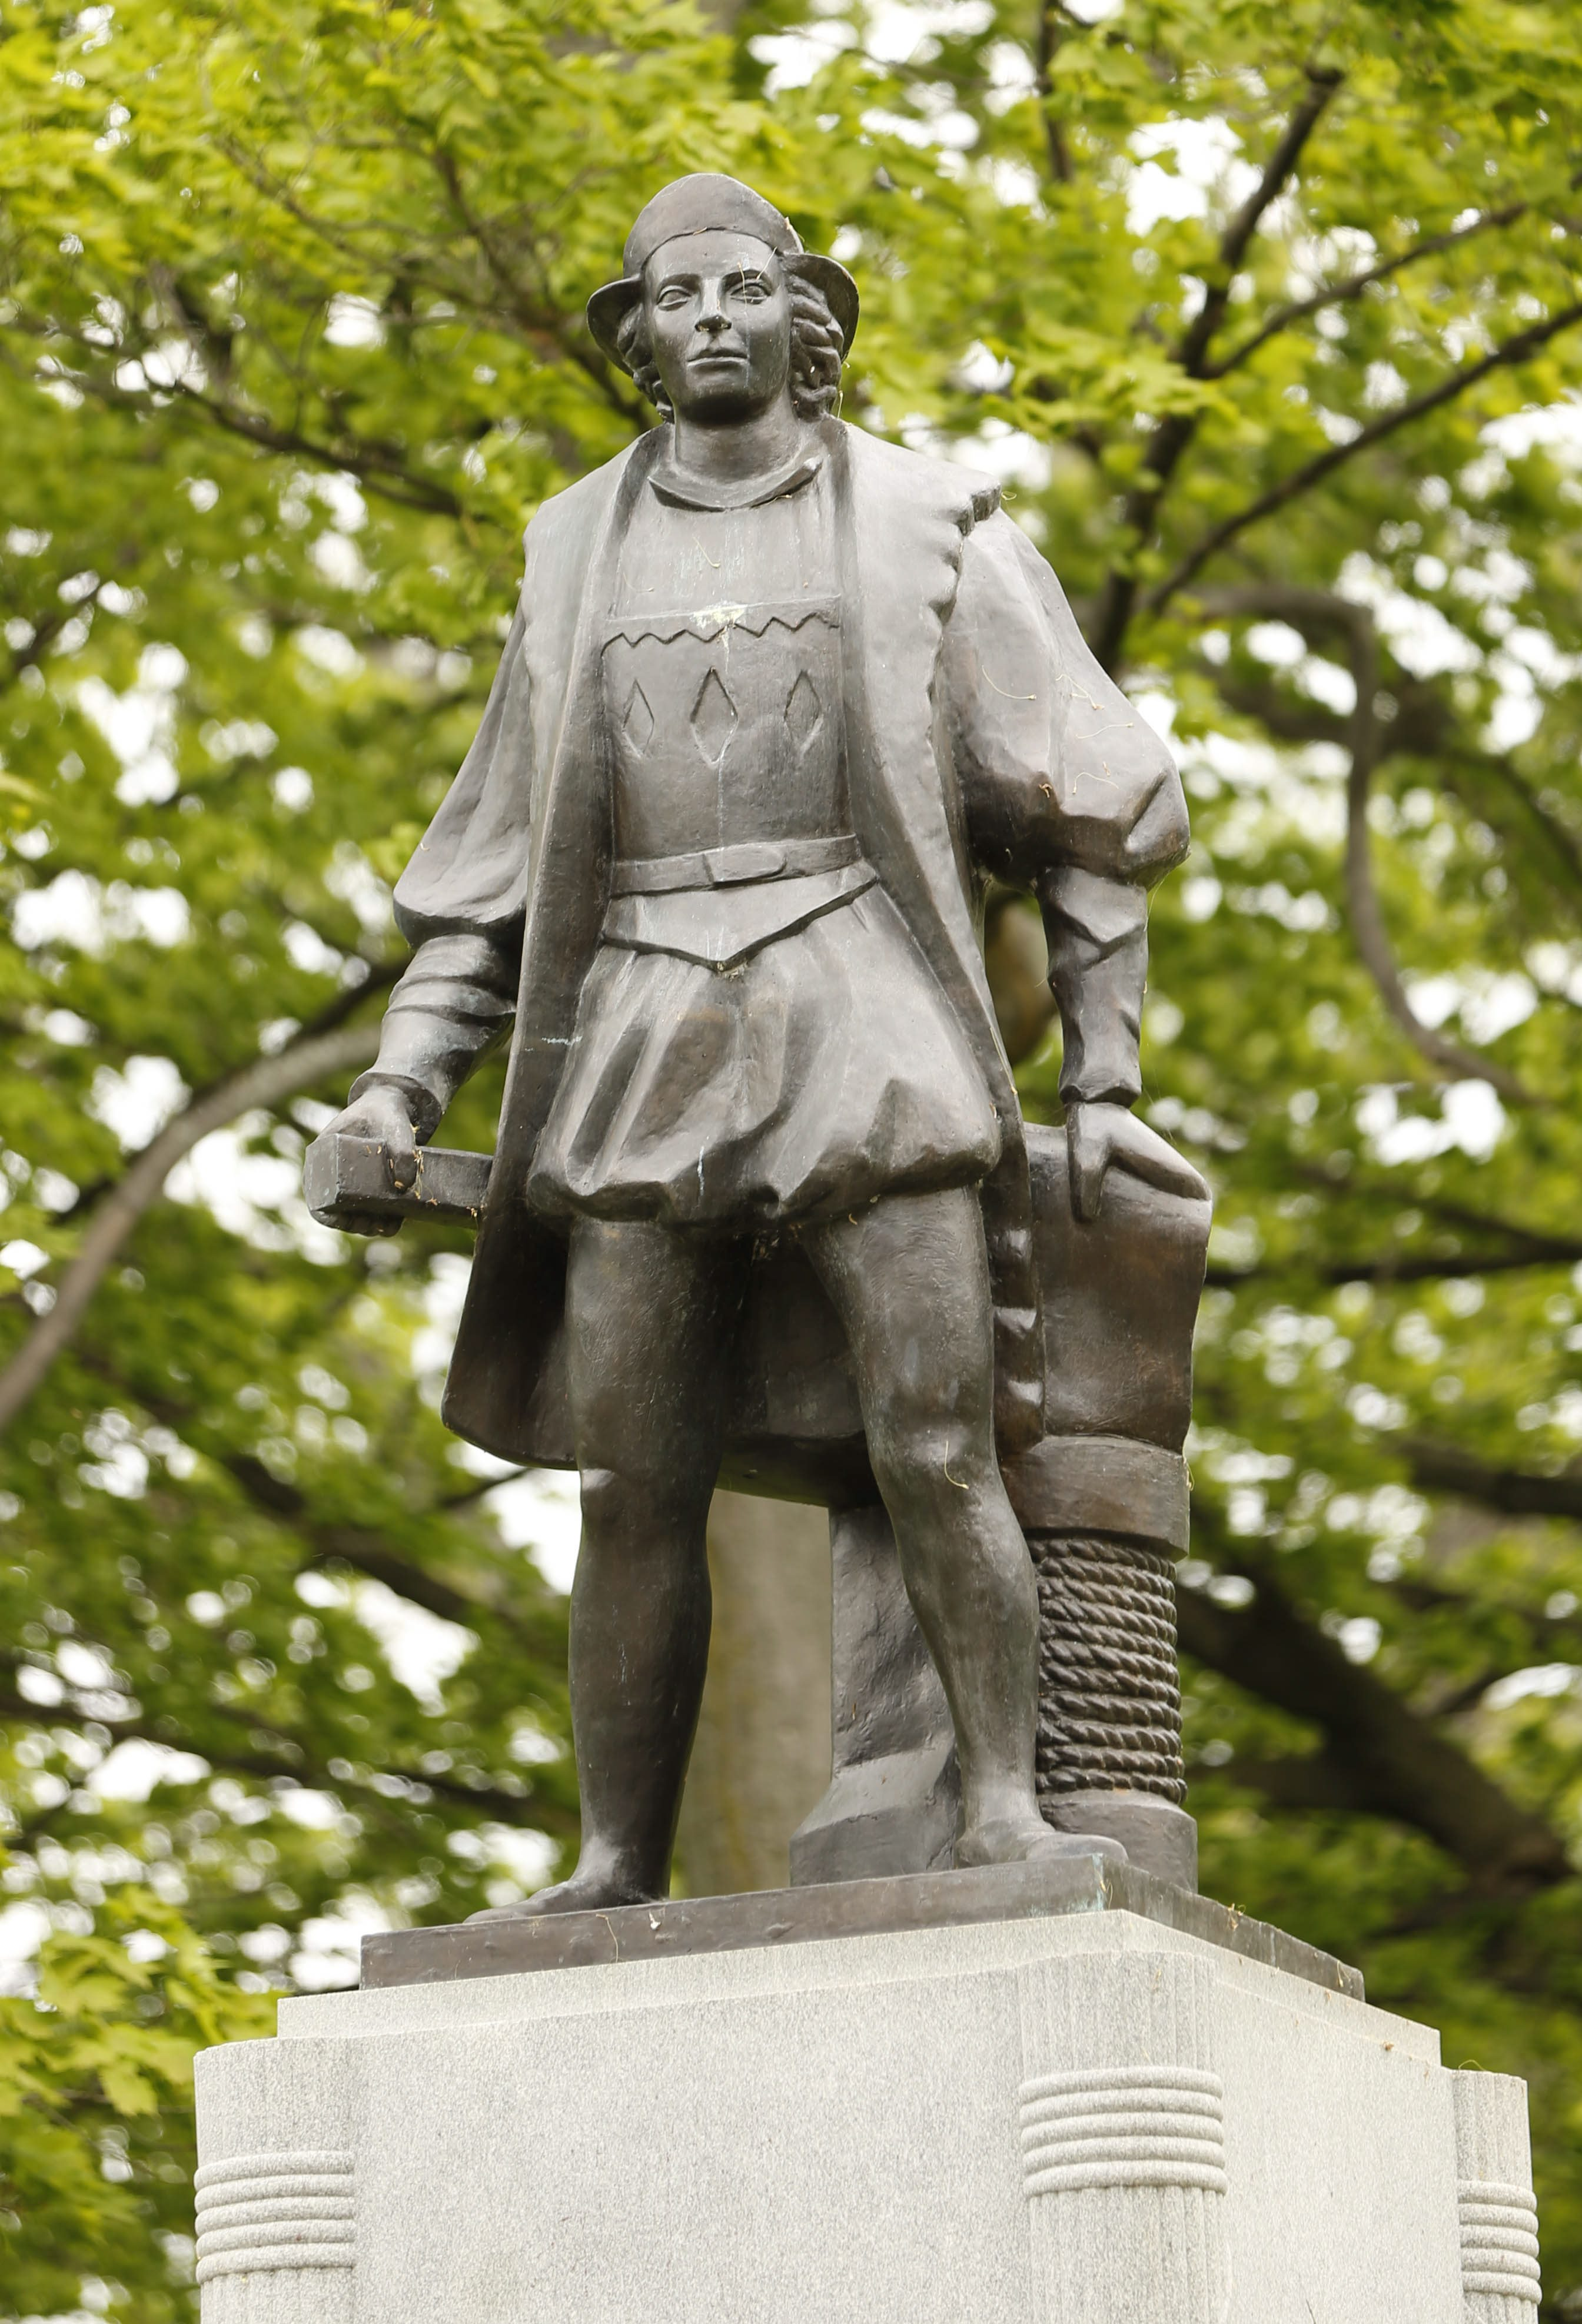 A statue of Christopher Columbus in Columbus Park in Buffalo on May 19, 2015.  (Derek Gee/Buffalo News/File photo)